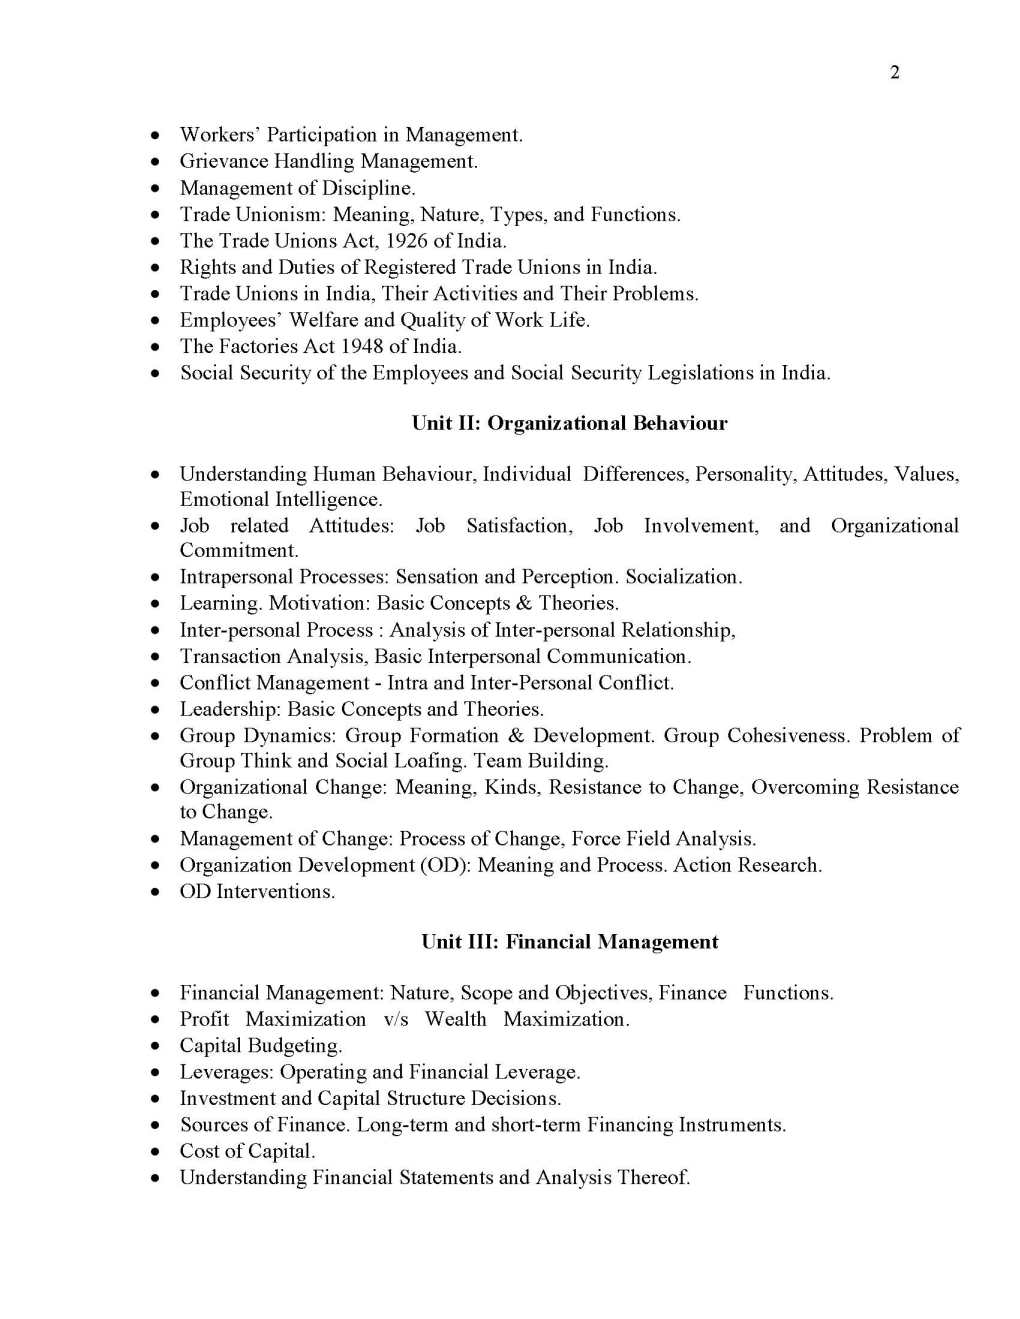 Phd coursework syllabus for computer science